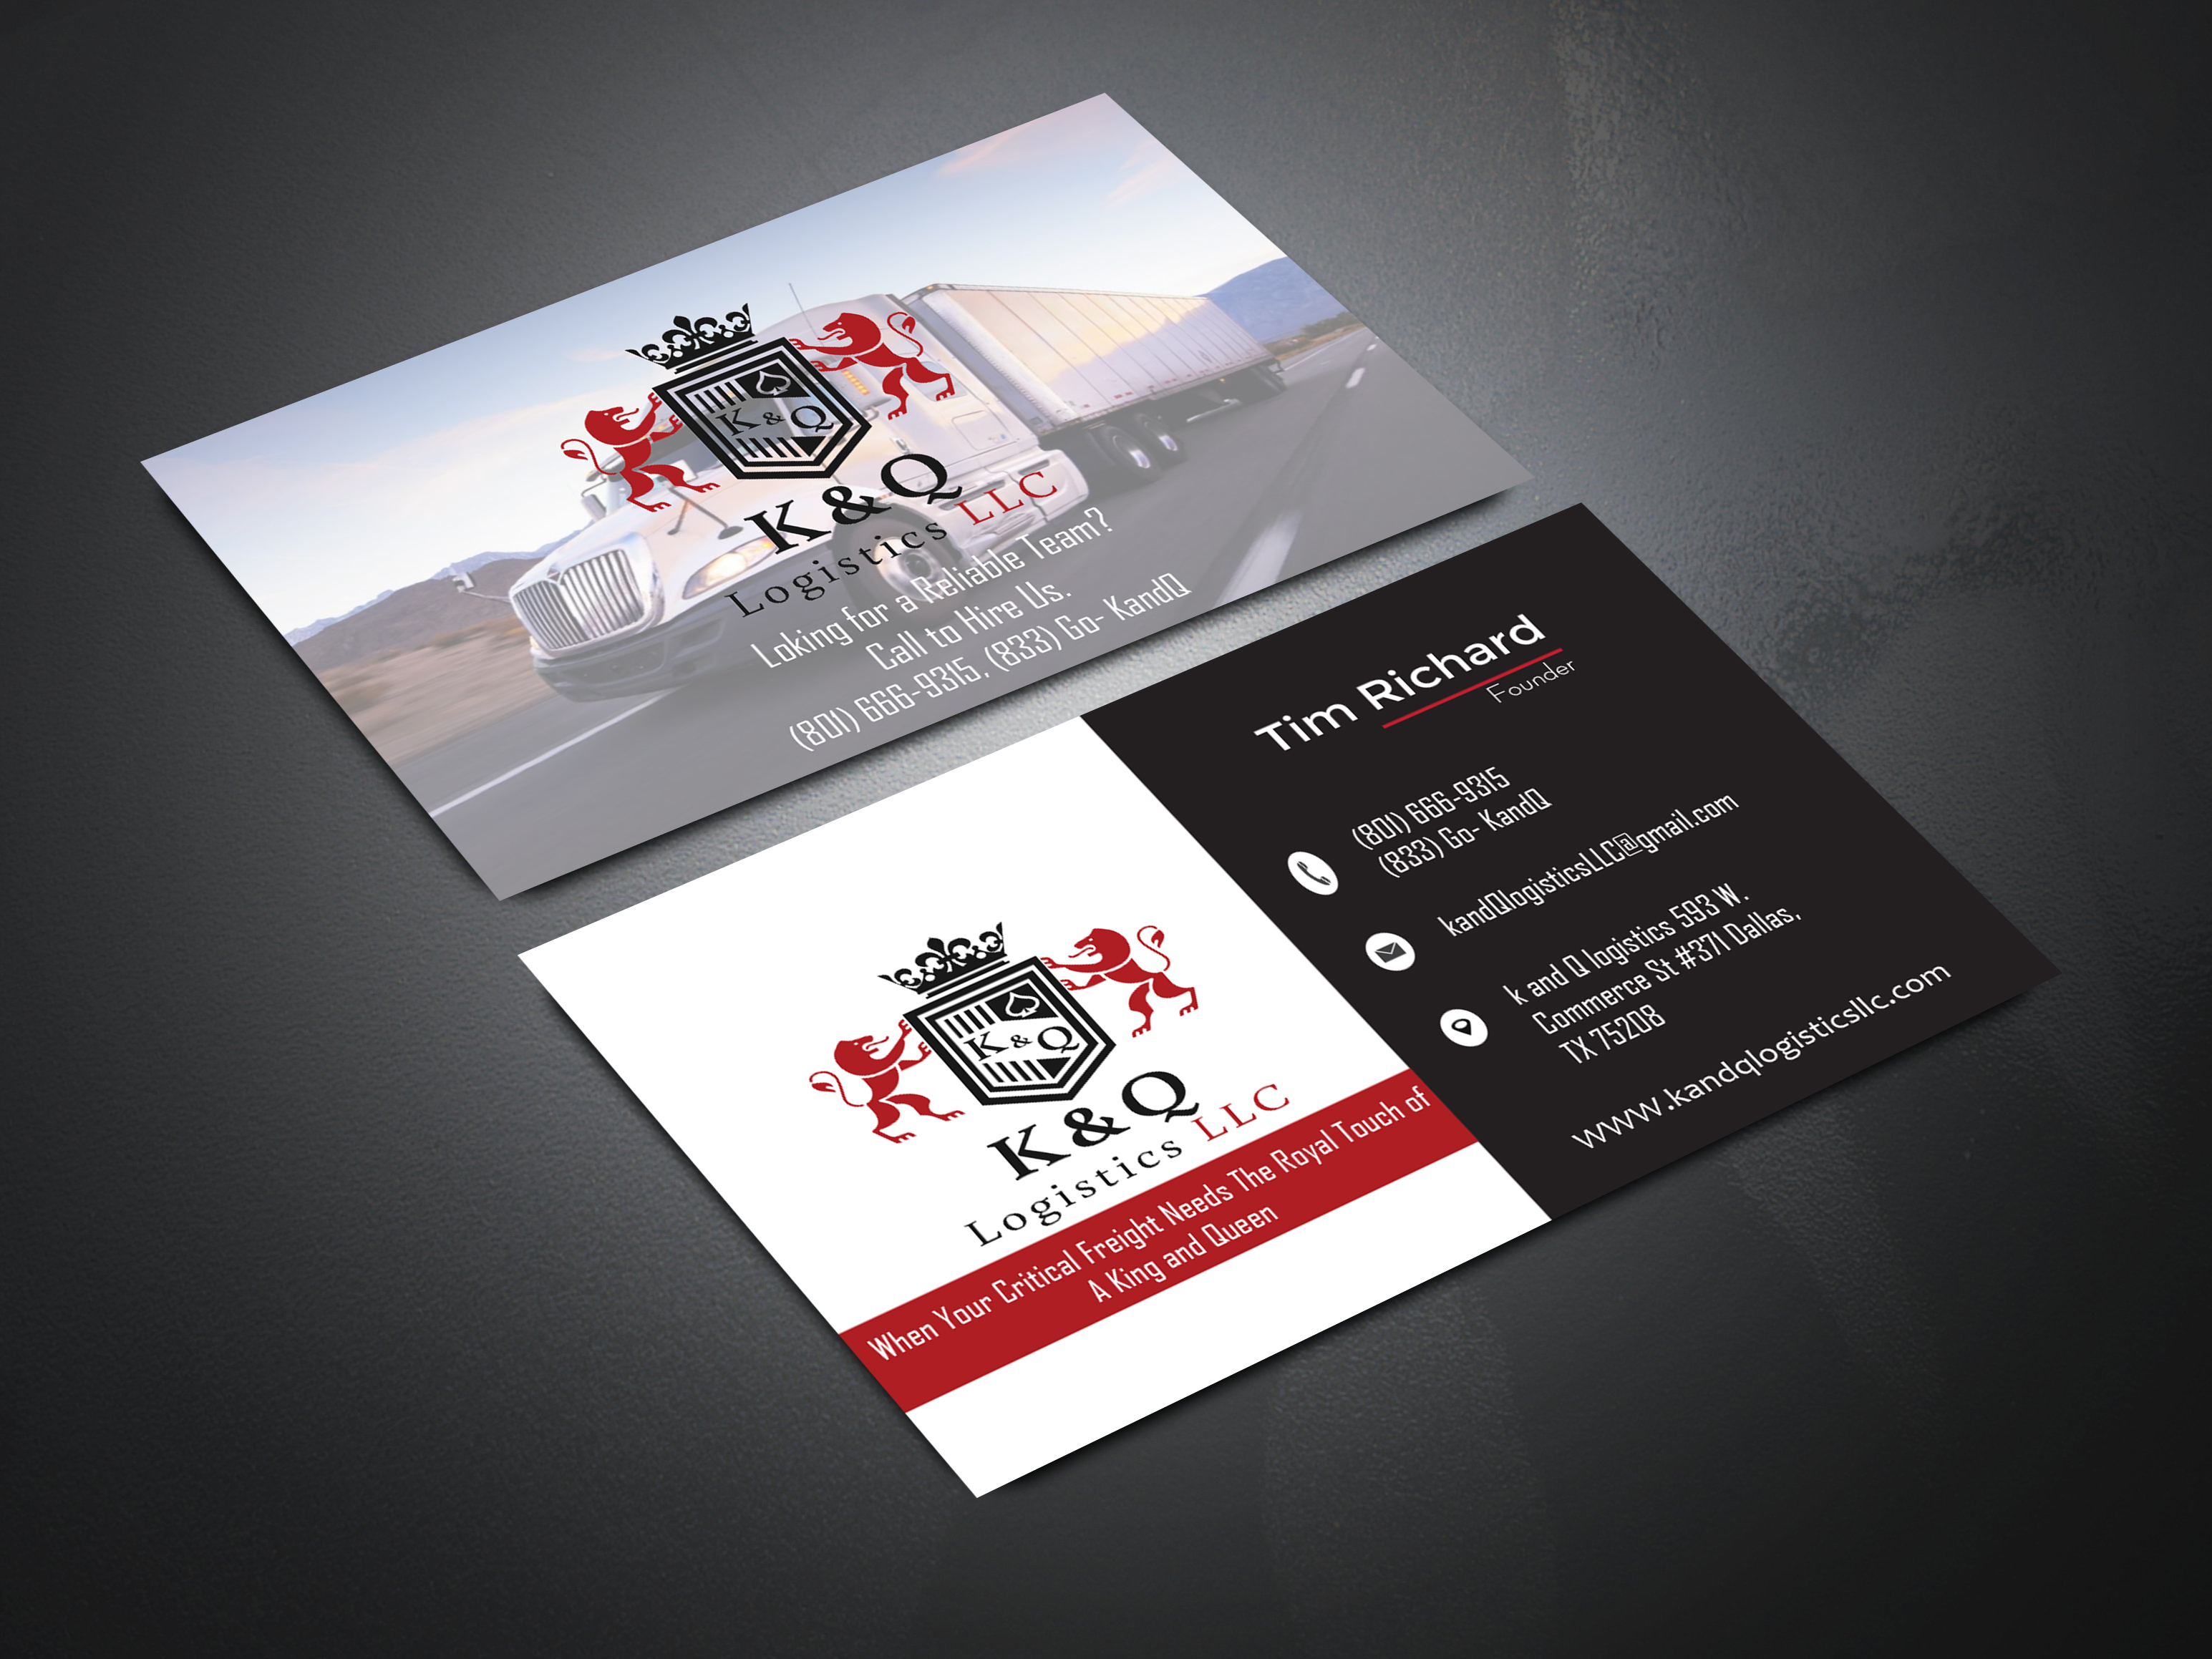 I Will Design a Professional Business Card in 24 Hours